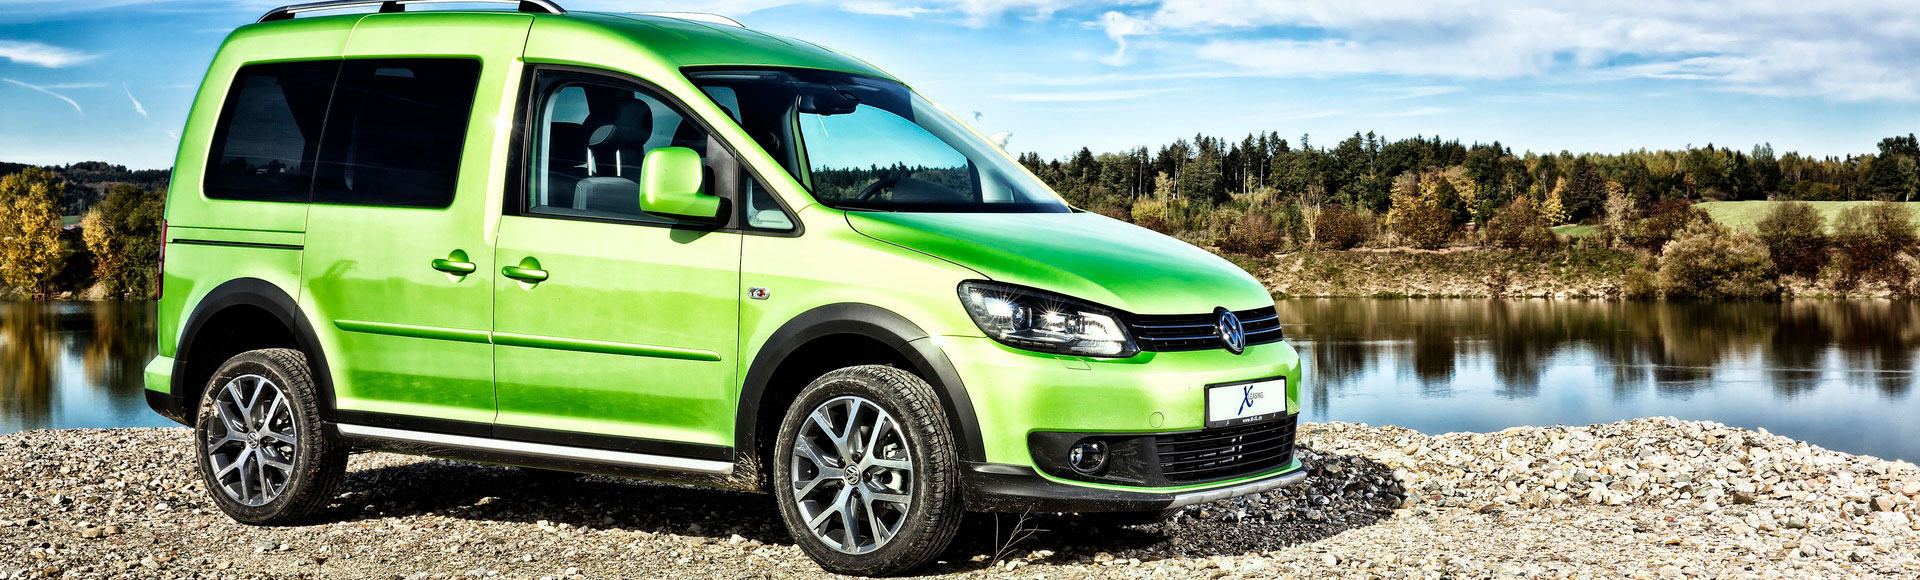 VW Caddy Country 2013 Sommer 36141